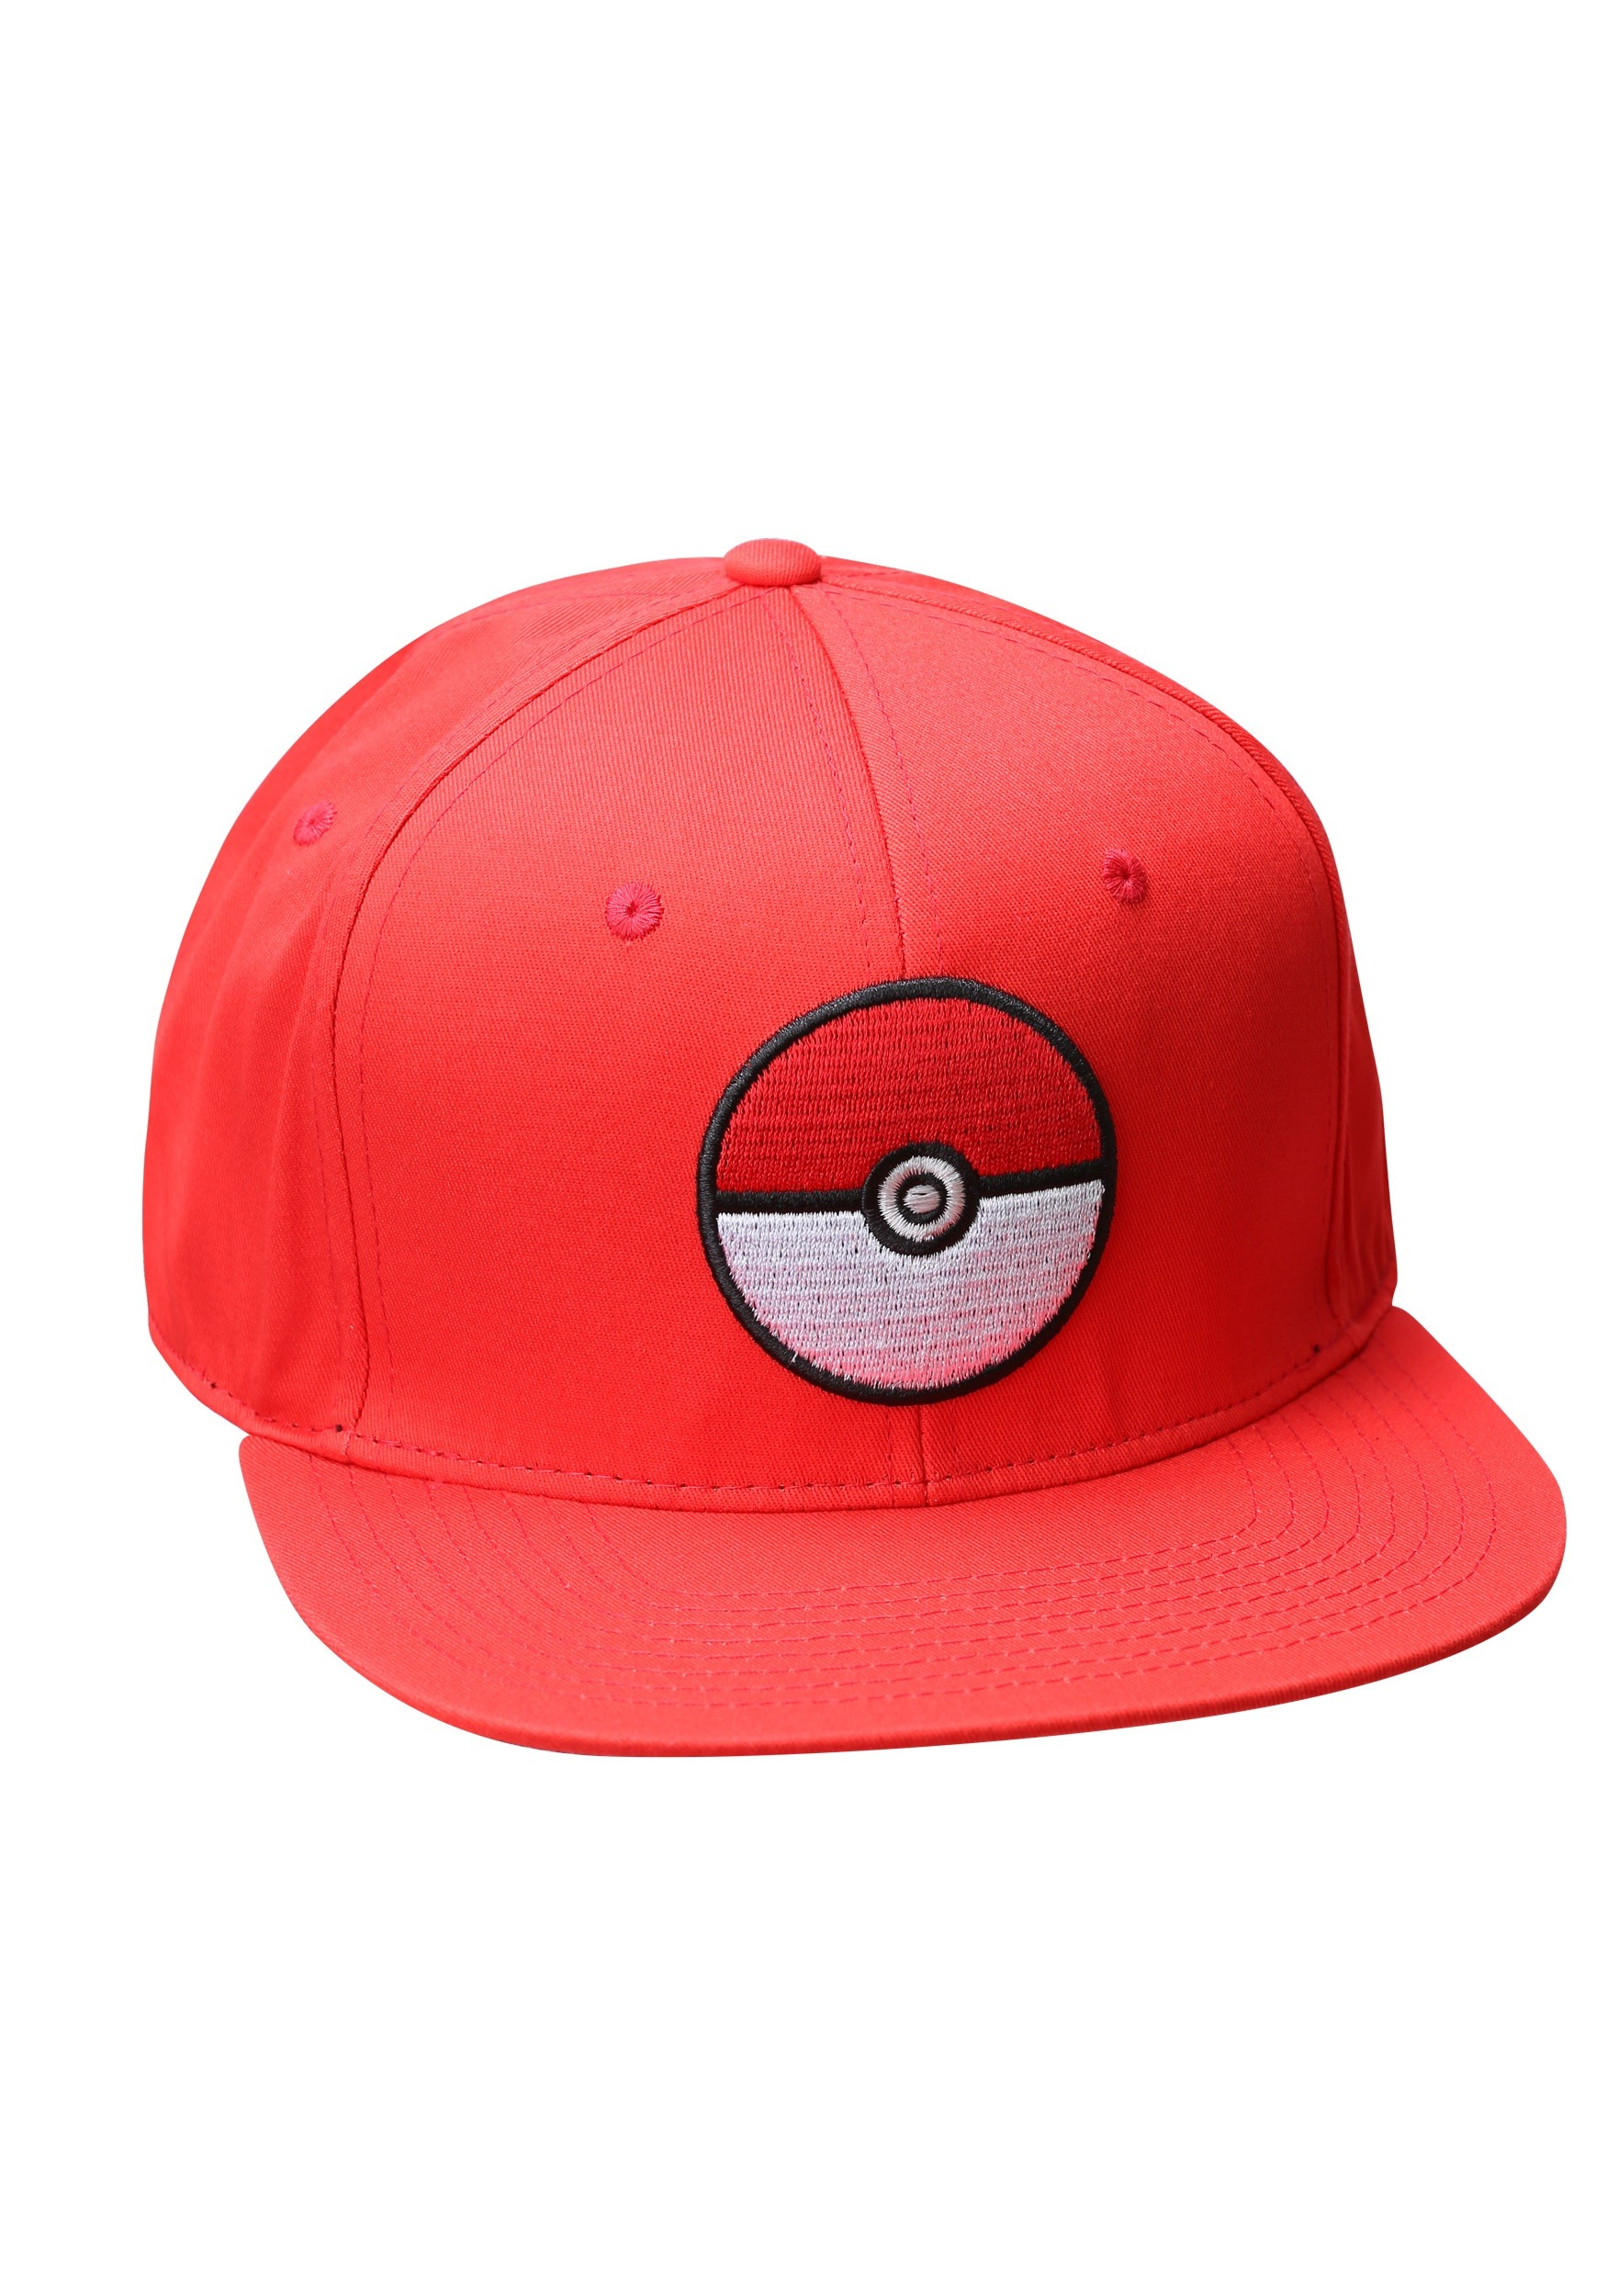 3610a8e43 Pokemon Pokeball Trainer Red Snapback Hat